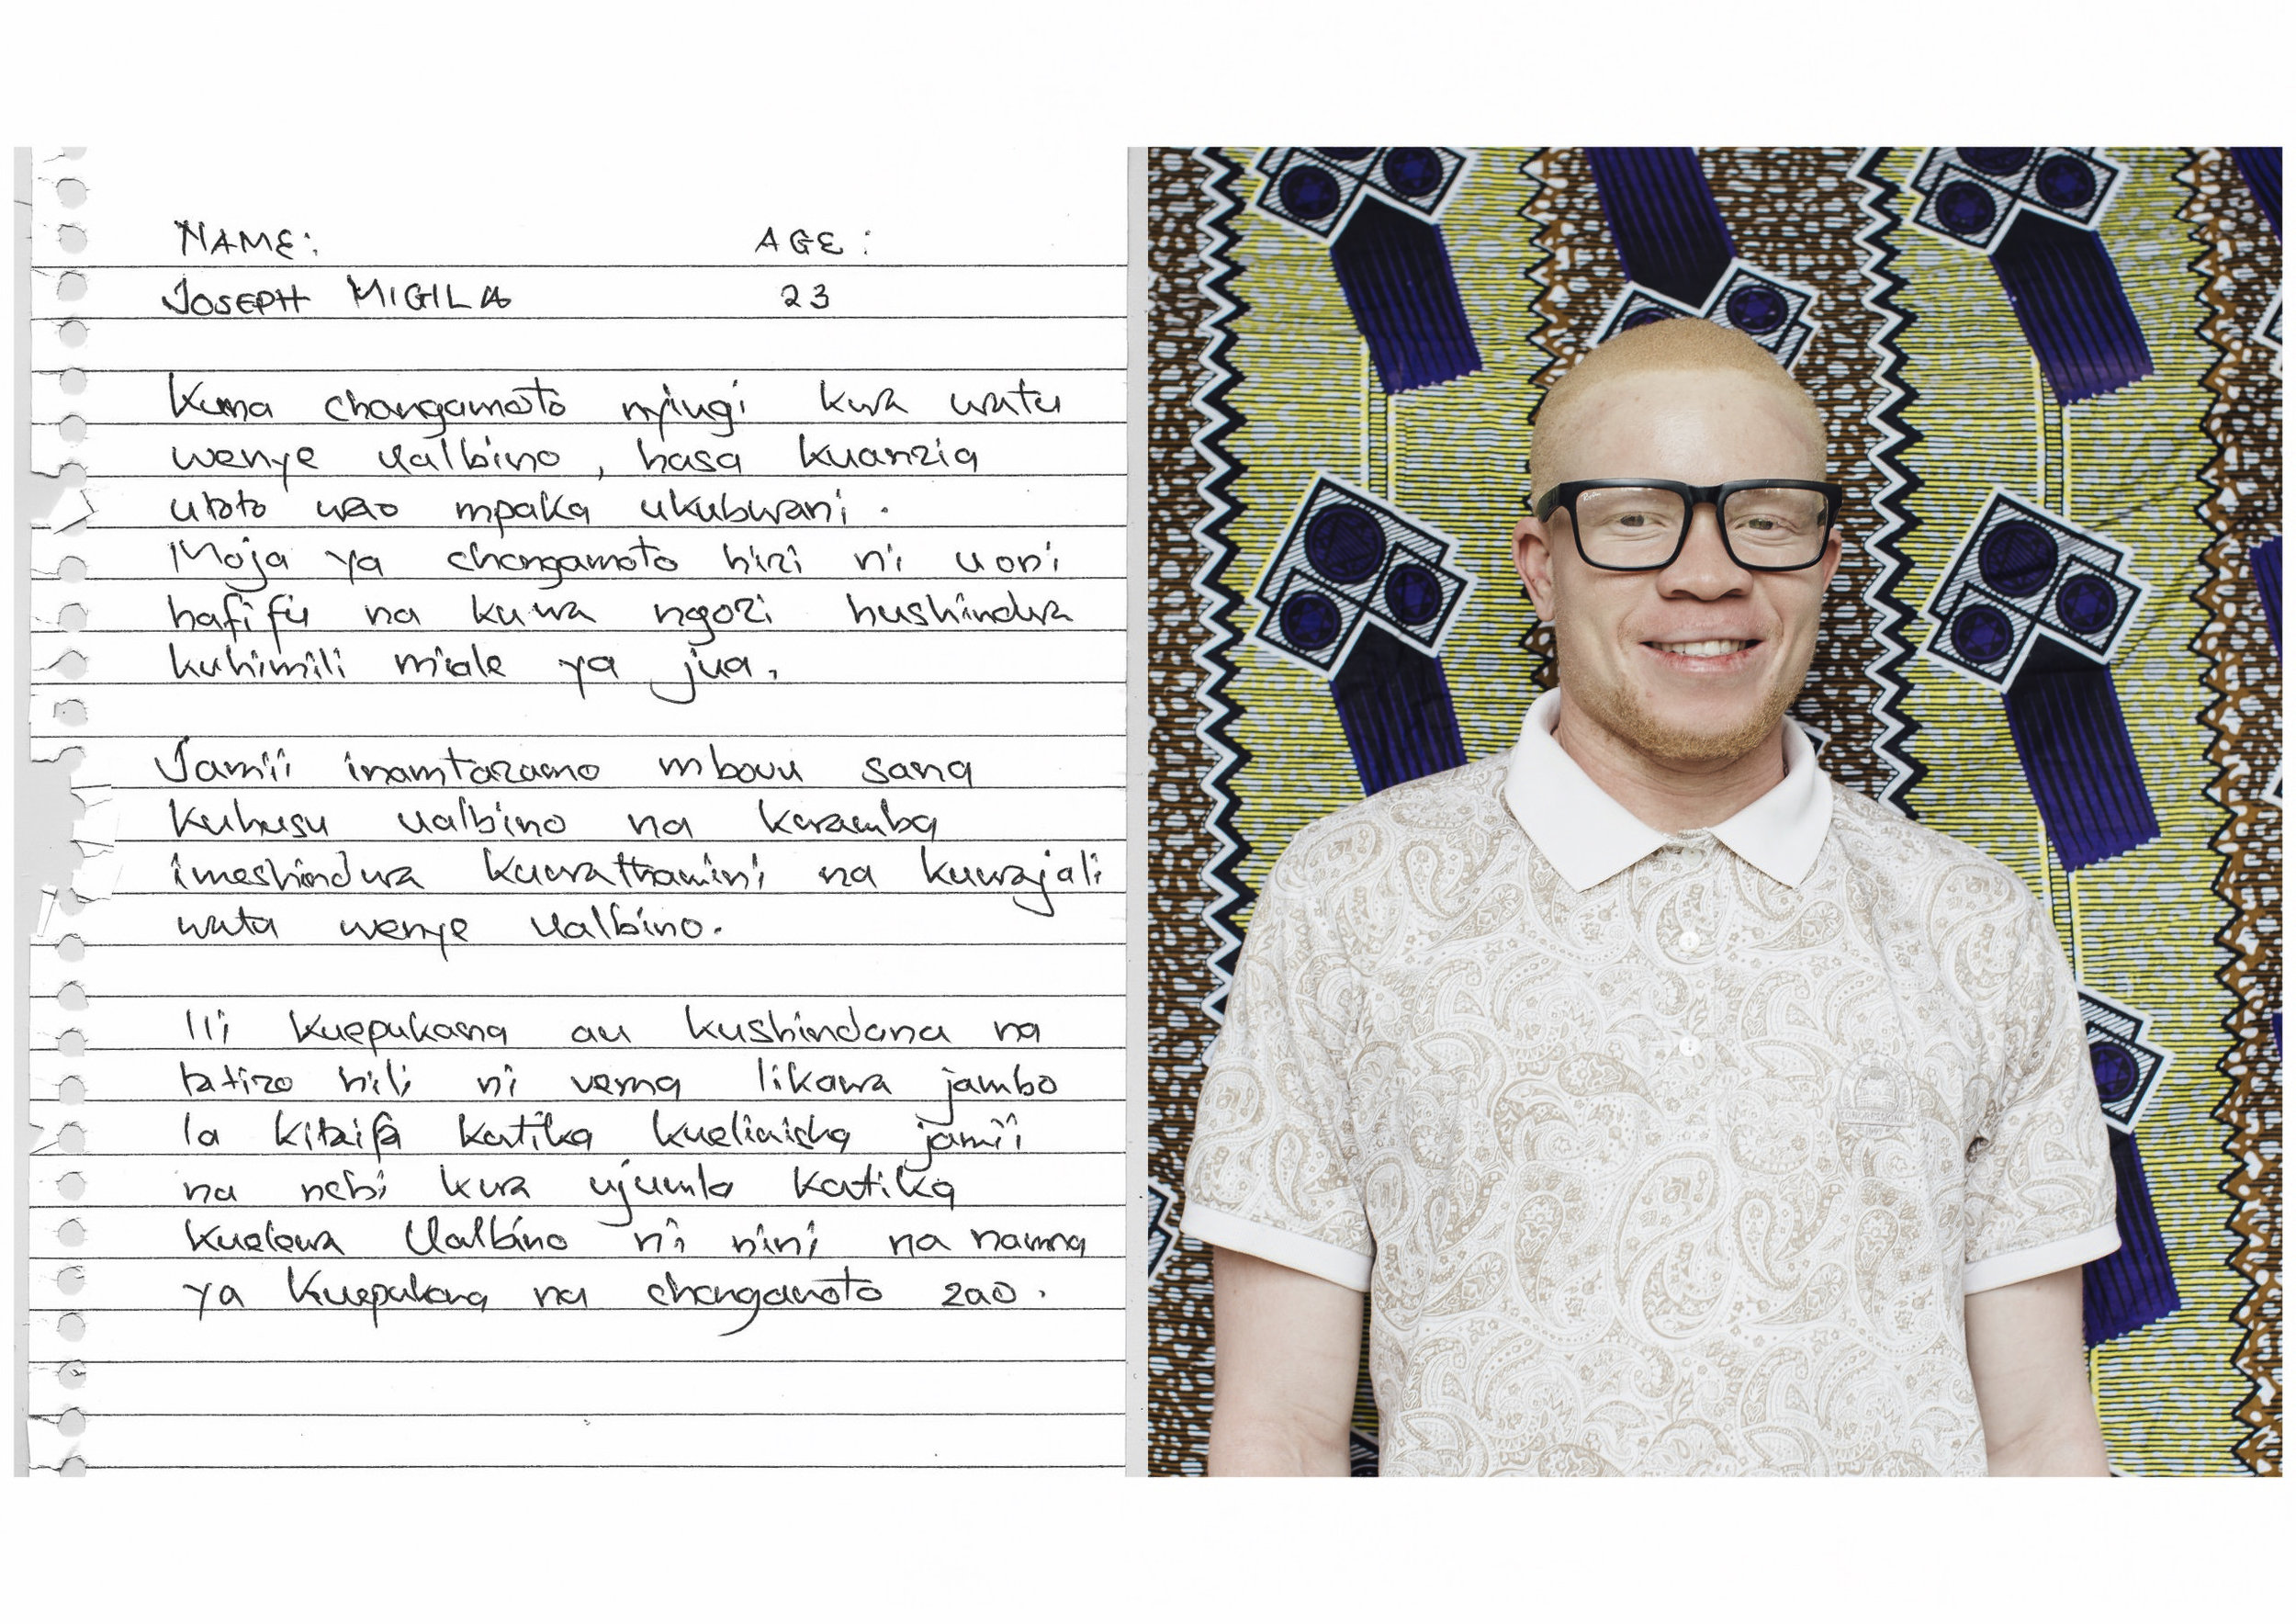 NAME: Joseph Migila    AGE: 23 years old    There are many challenges facing people with albinism, from their childhood up to adulthood.    Some of these challenges are low vision and inability of their skin to withstand sun rays.    The society has a very bad perception on albinism and, it has failed to appreciate and care for people with albinism.    In order to evade or deal with this problem, it is better that it becomes a national issues, in educating the society and the country as a whole on what is albinism and how to deal with challenges facing people with albinism.